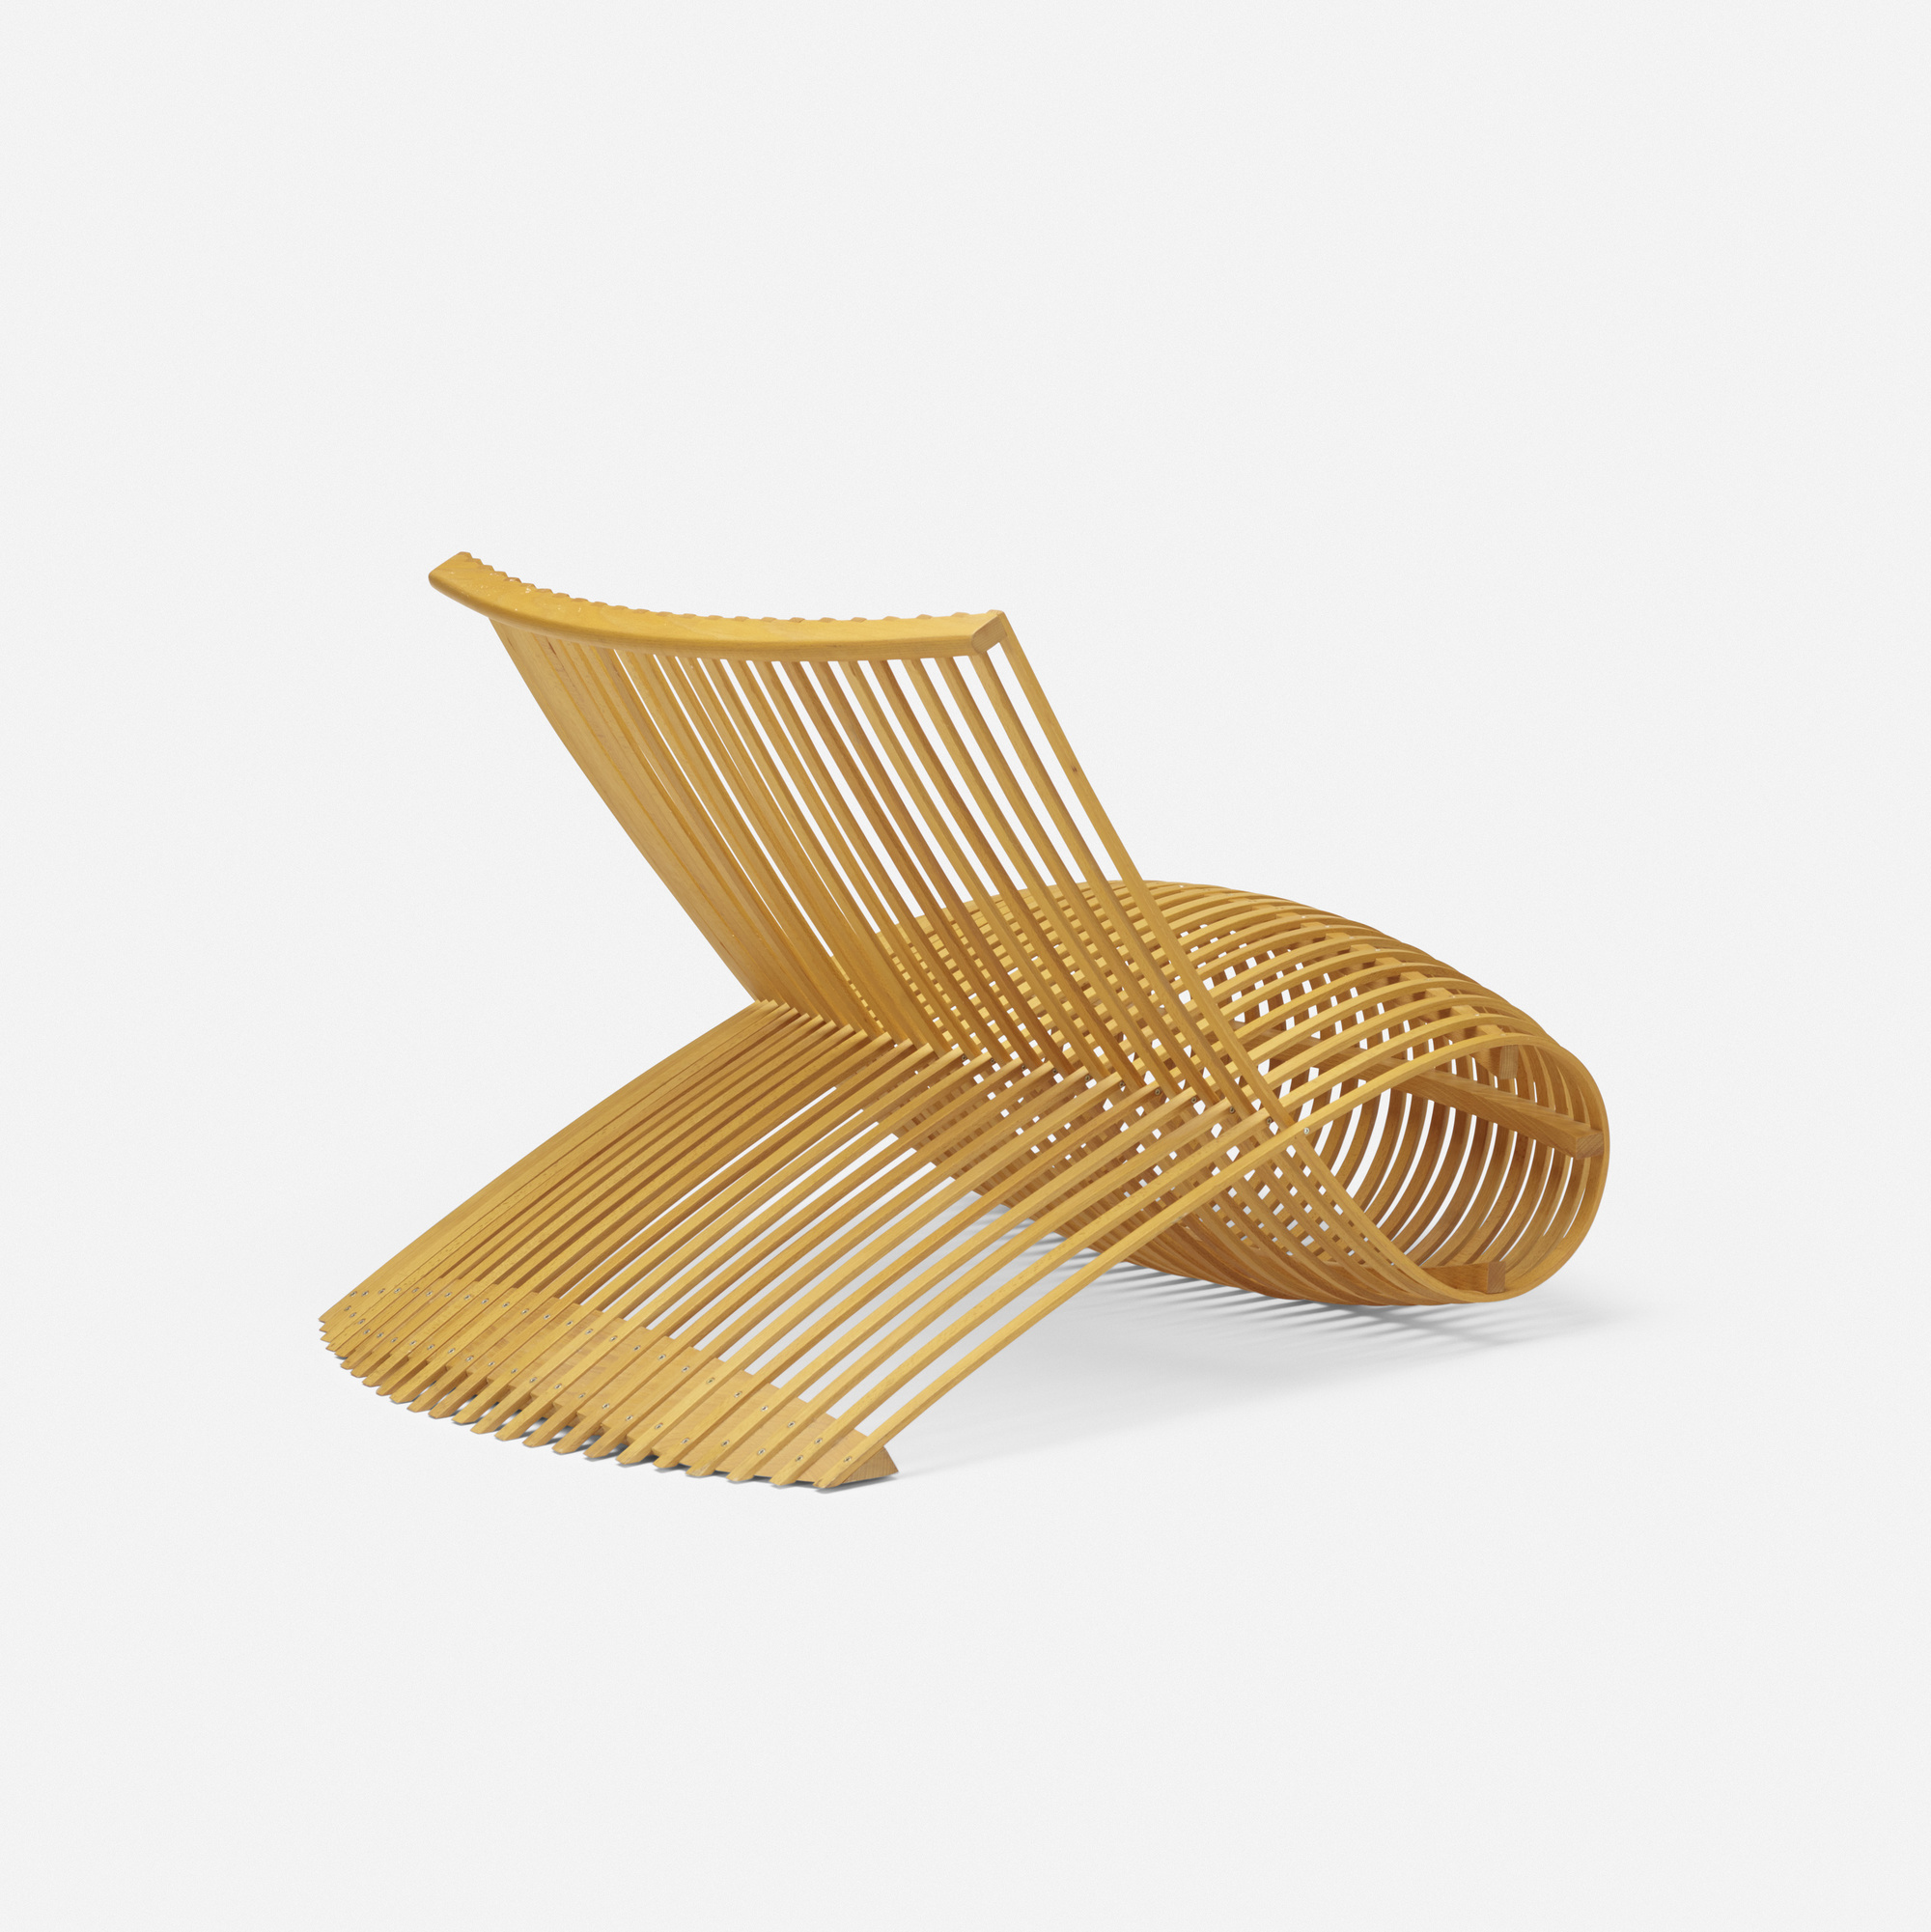 278: Marc Newson / Wooden chair (1 of 3)